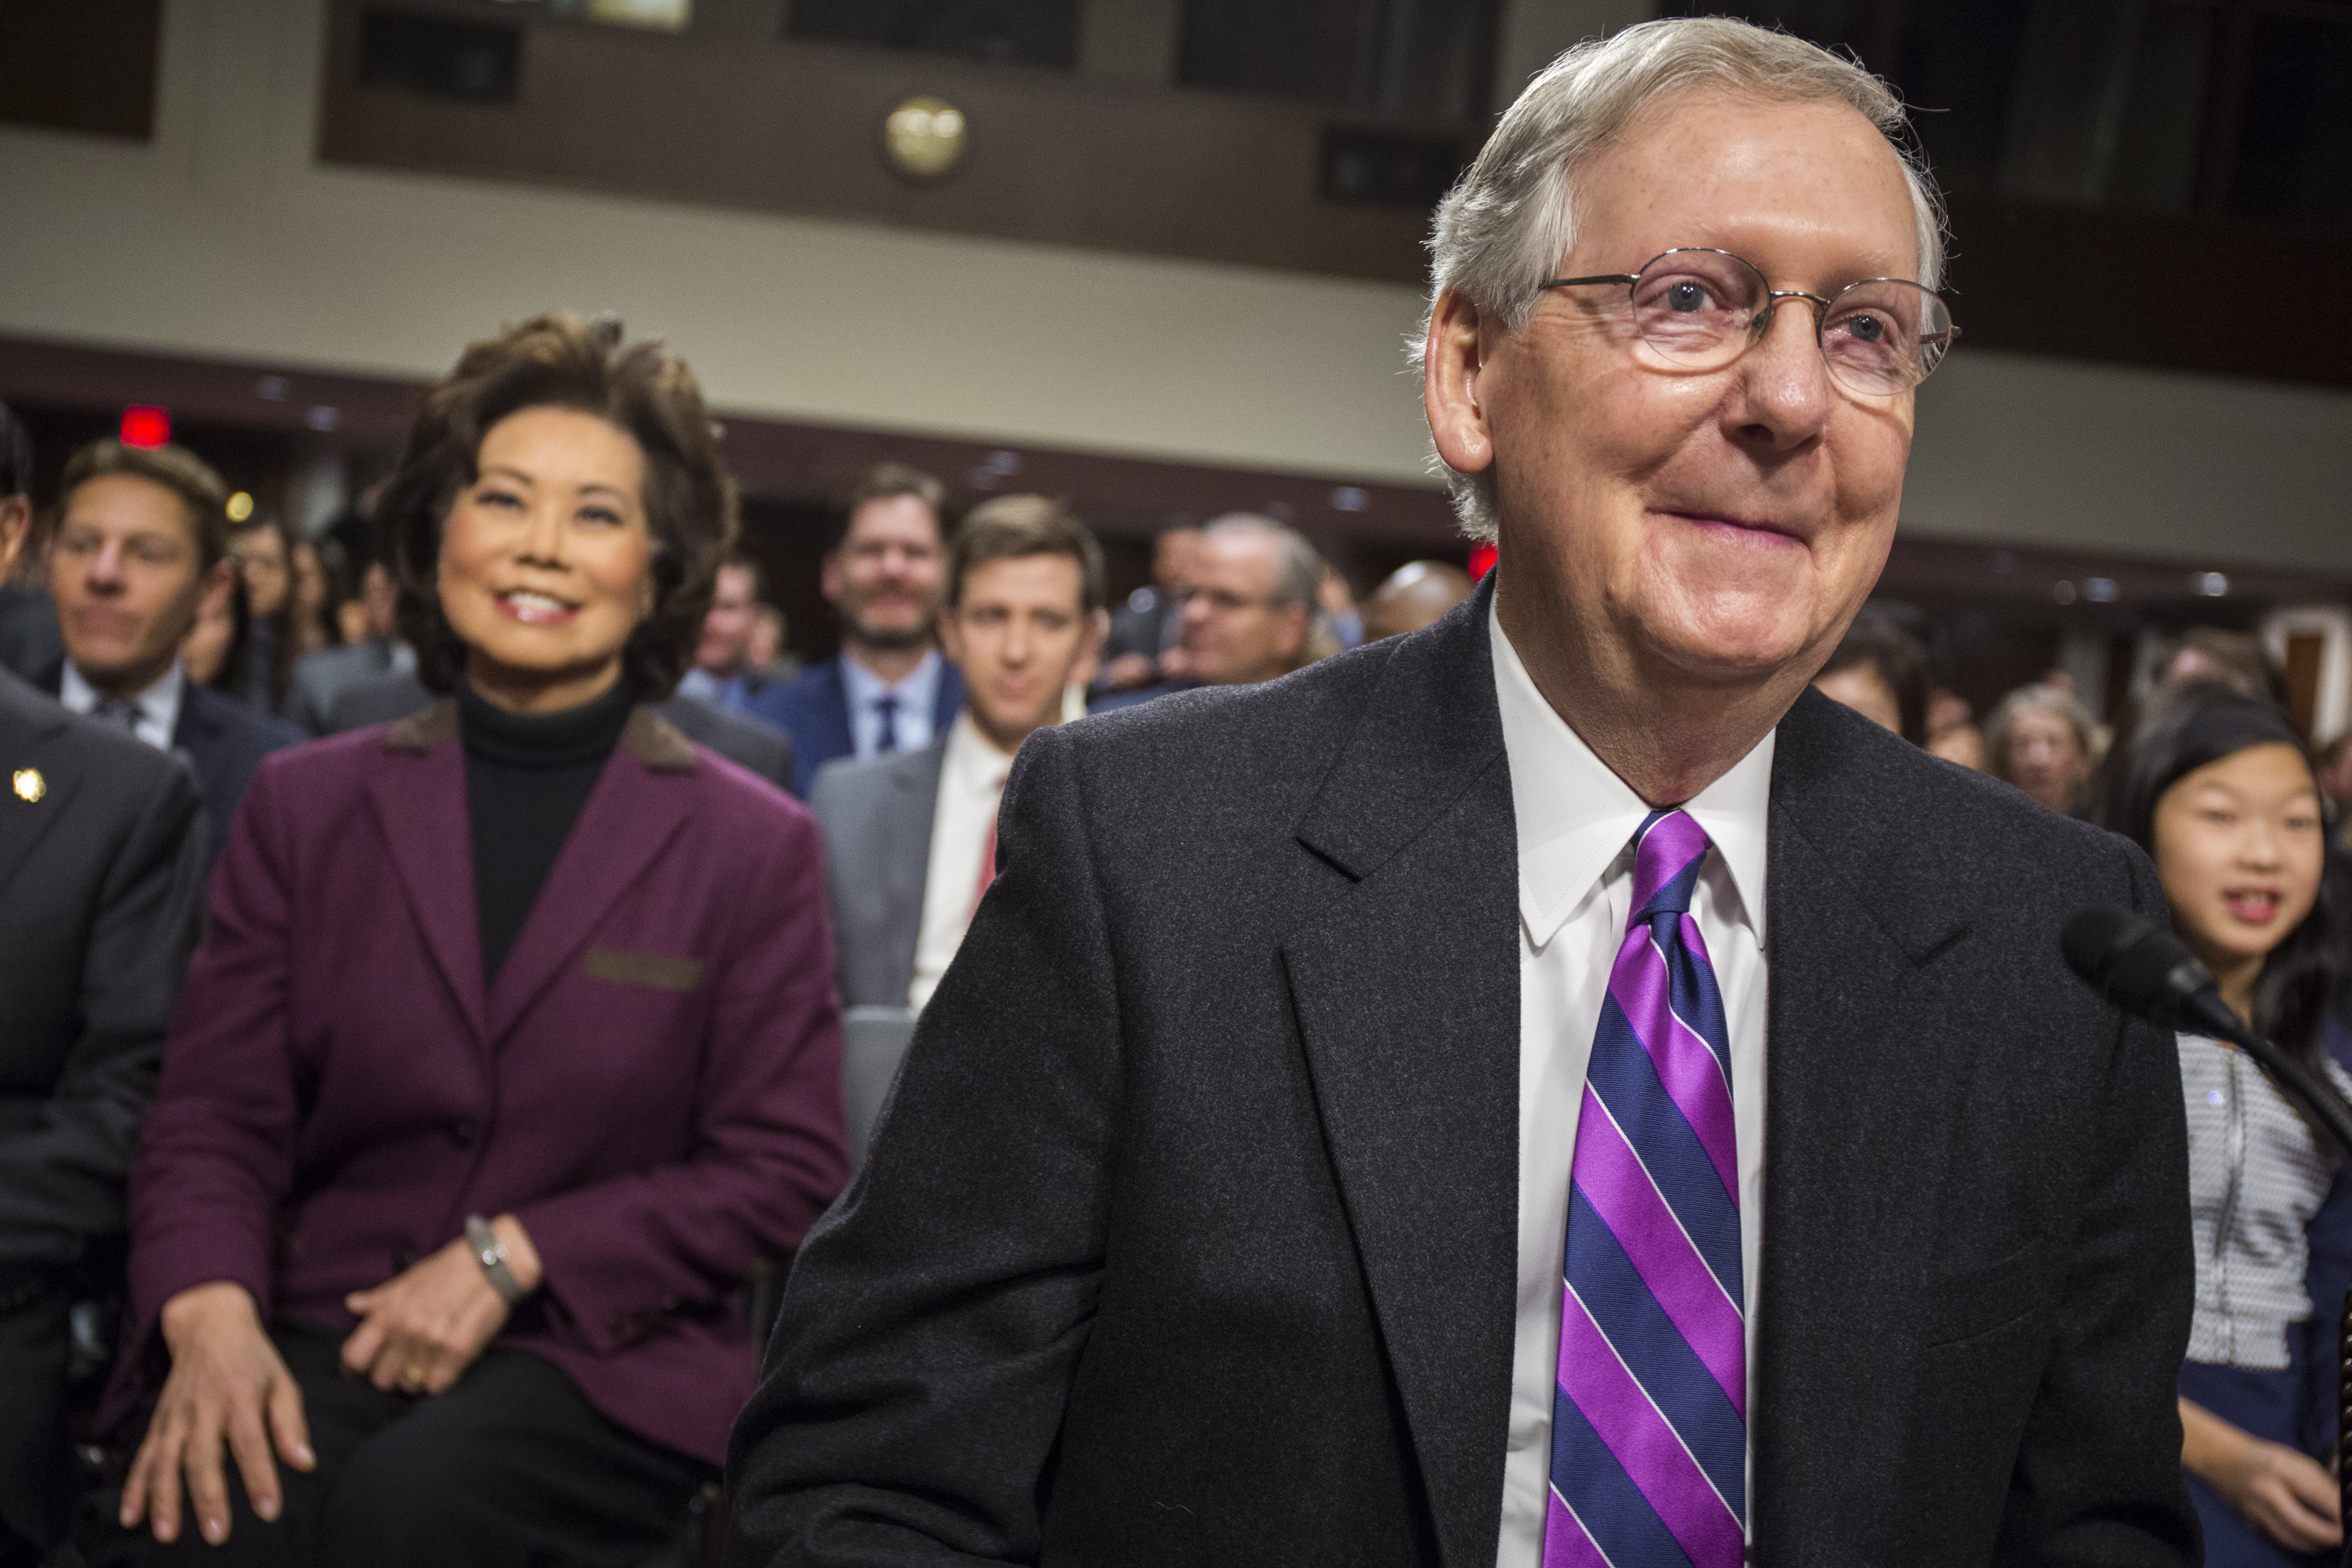 Transportation Secretary-designate Elaine Chao watches as her husband, Senate Majority Leader Mitch McConnell of Ky., arrives on Capitol Hill in Washington on Jan. 11, 2017. (AP Photo/Zach Gibson)